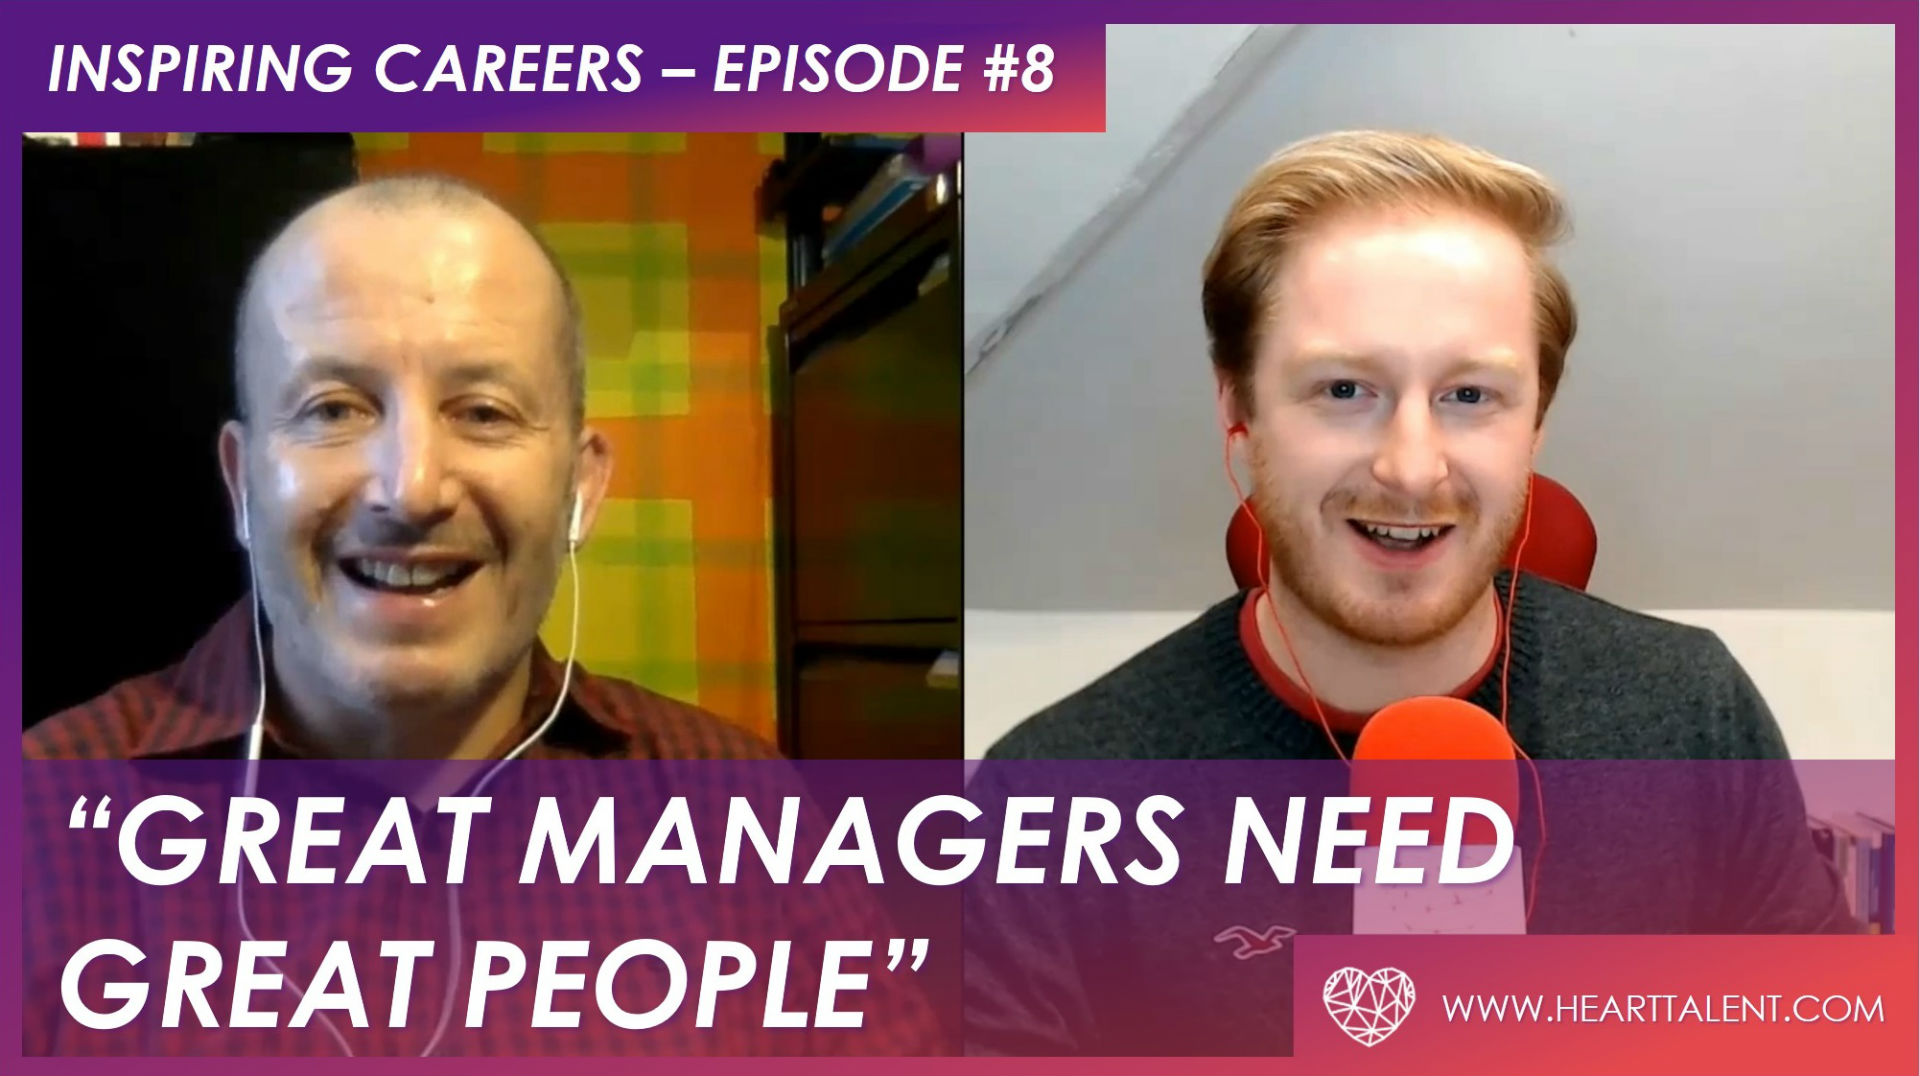 Check out Heart Talent's latest episode of Inspiring Careers!